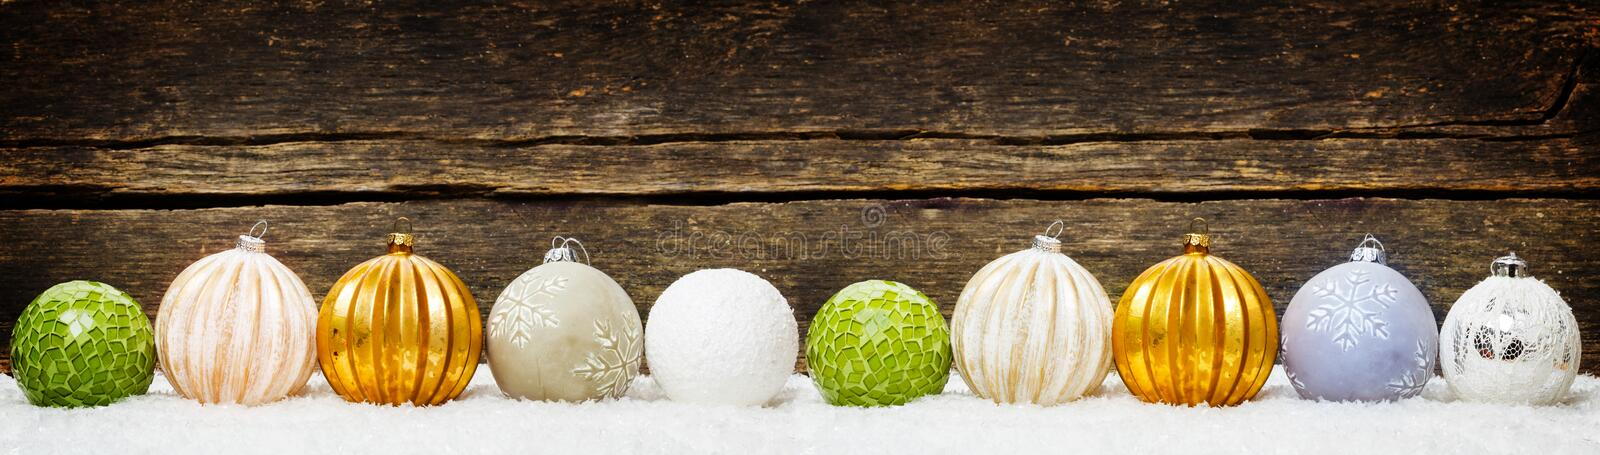 Christmas backgrounds, Christmas decoration with balls royalty free stock images